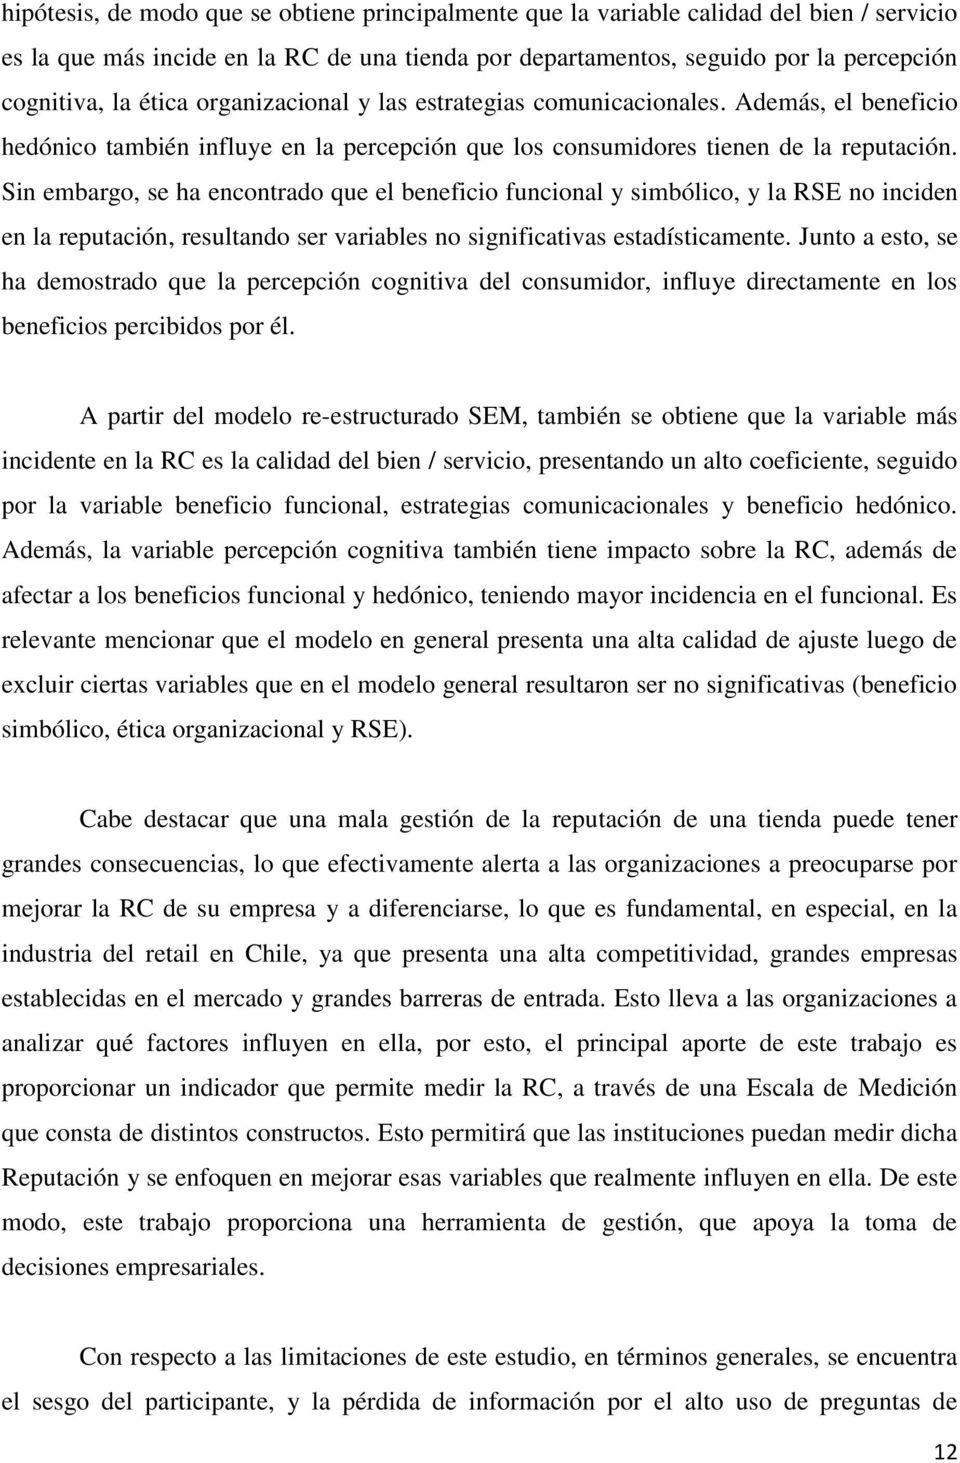 Sin embargo, se ha encontrado que el beneficio funcional y simbólico, y la RSE no inciden en la reputación, resultando ser variables no significativas estadísticamente.